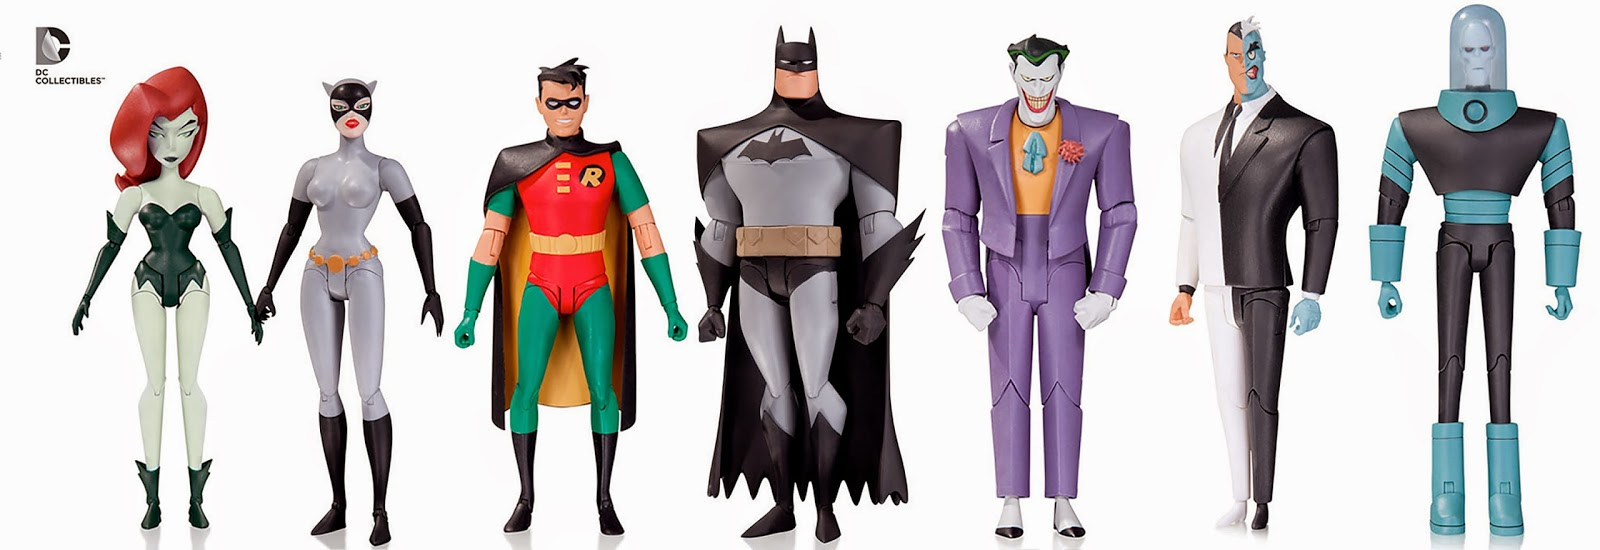 """DC Collectibles has announced the expansion of their 6"""" Animated Batman figures. This looks to be a nice set of figures, especially with DCU dropping out of retail, this is a nice continuation to what could have easily been done by Mattel.    Just today we were introduced to the Joker, Robin, & Poison Ivy. Two Face and Mr Freeze's debut was a few months ago if only in sketches. This brings the total to 7 figures in an already unreleased line-up. Simply amazing. We're sure to see more at SDCC this summer as well.  Who's next?  Superman the Animated Series anyone?  Seeing how these are being handled definitely makes the mind wander. Seeing such a push into a territory with the idea that there will be more lends to the thought that this could be a new era approaching for DCC. Mattel finally bowed out of the 6"""" game for DC characters leaving Marvel Legends to run the toy isles. Meanwhile DCC is putting out some of the best looking figures right now that we may have never come to expect from DCC, Formerly DC Direct. It even looks like we are hijacking Mattel's T Crotch/Hip assemblies anyway.   Points of articulation have been a point of articulation for years in action figure collecting. Do we need it? Does it diminish the look of the figure? What's more valuable, posability or awesome sculpts? Has anyone seen Figma? These people have been doing AWESOME beautiful Japanese characters, and when they get to do familiar pop culture characters, they blow it away!!!   Anyway, I think its been pretty clear that DCC is looking to pick up the slack left behind by Mattel. Could we be stepping into the world where the figures we wanted to see from Mattel will come from DCC in our current scale?  Superman Movie Masters anyone?   Imagine the result of DCC getting behind supplementing our appetites for Mattel product? We finally get a Christopher Reeve retail figure and he's 4"""" tall? or less? No thanks, why is it that Mattel has decided to get out of the 6"""" game? or have they? Will Mo"""